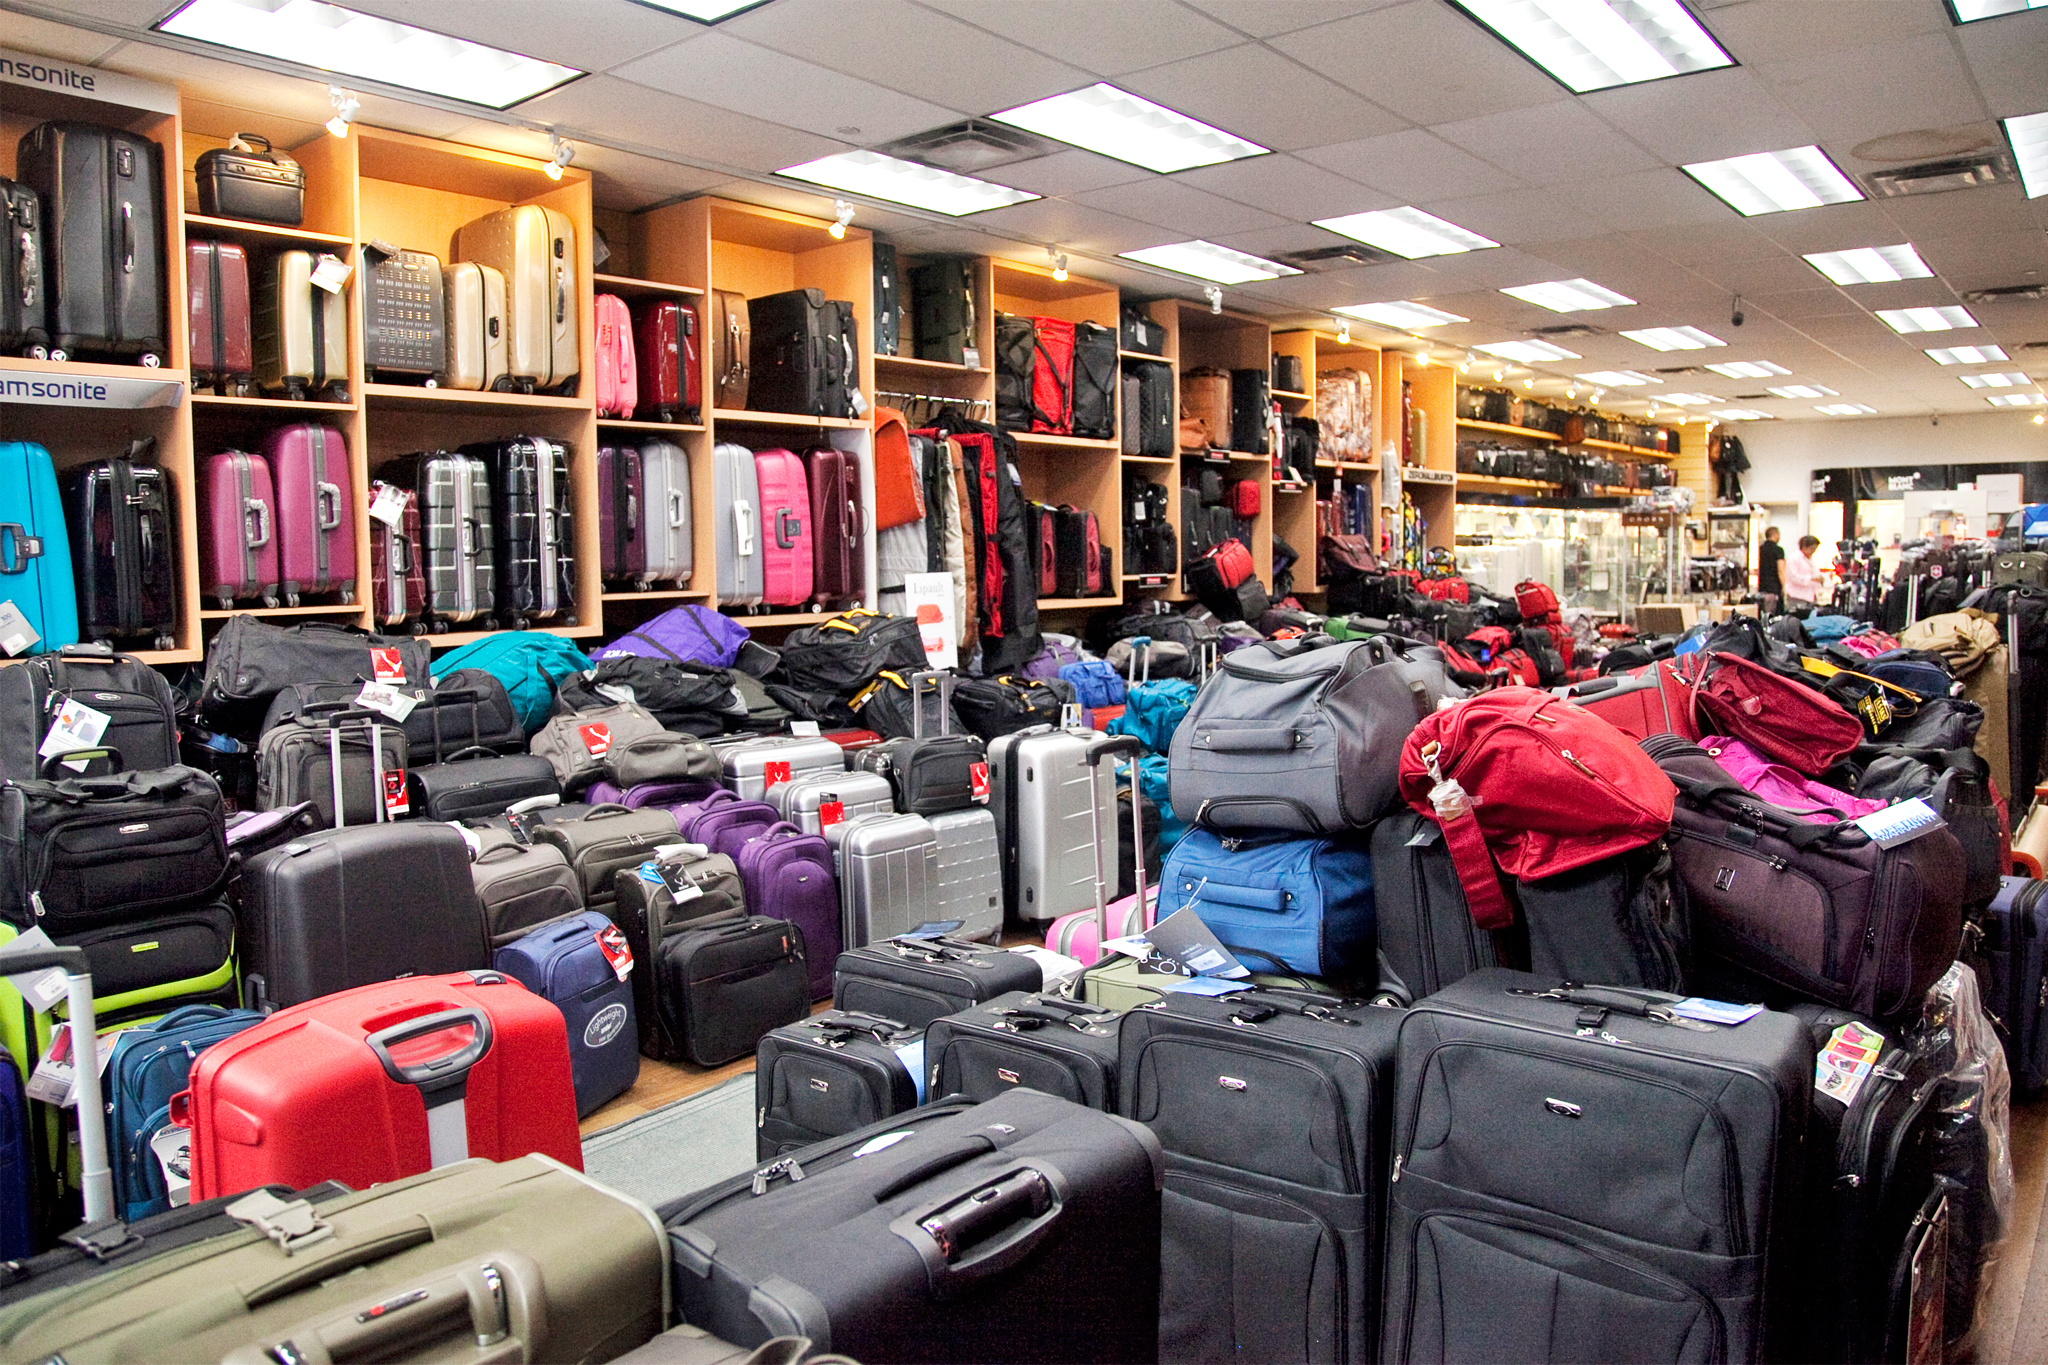 Best luggage stores in NYC for suitcases and travel accessories